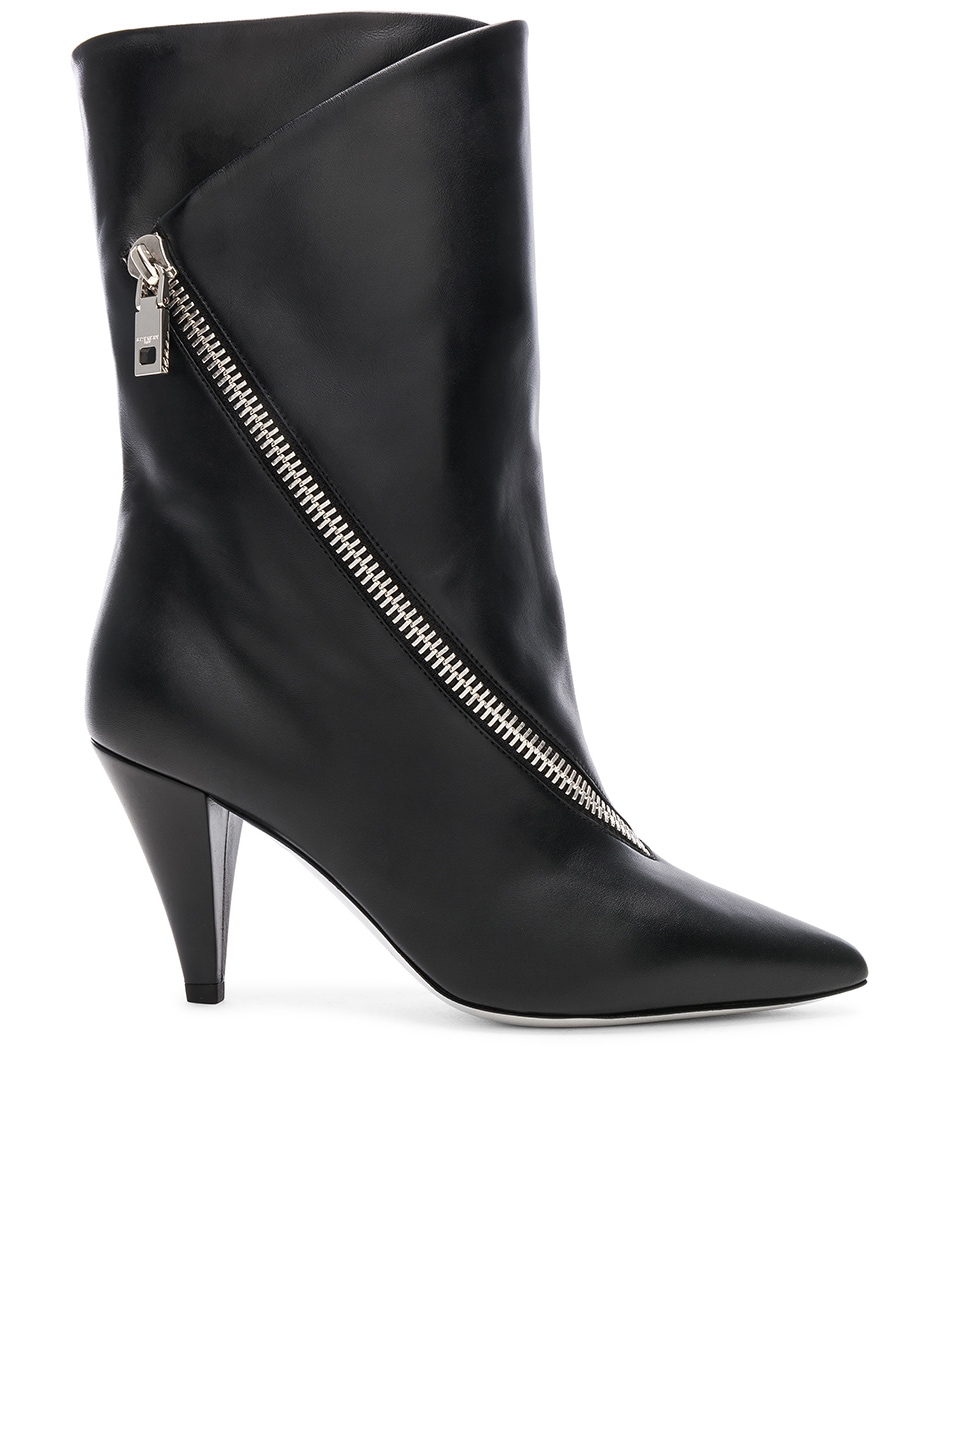 Image 1 of Givenchy Zip Leather Boots in Black